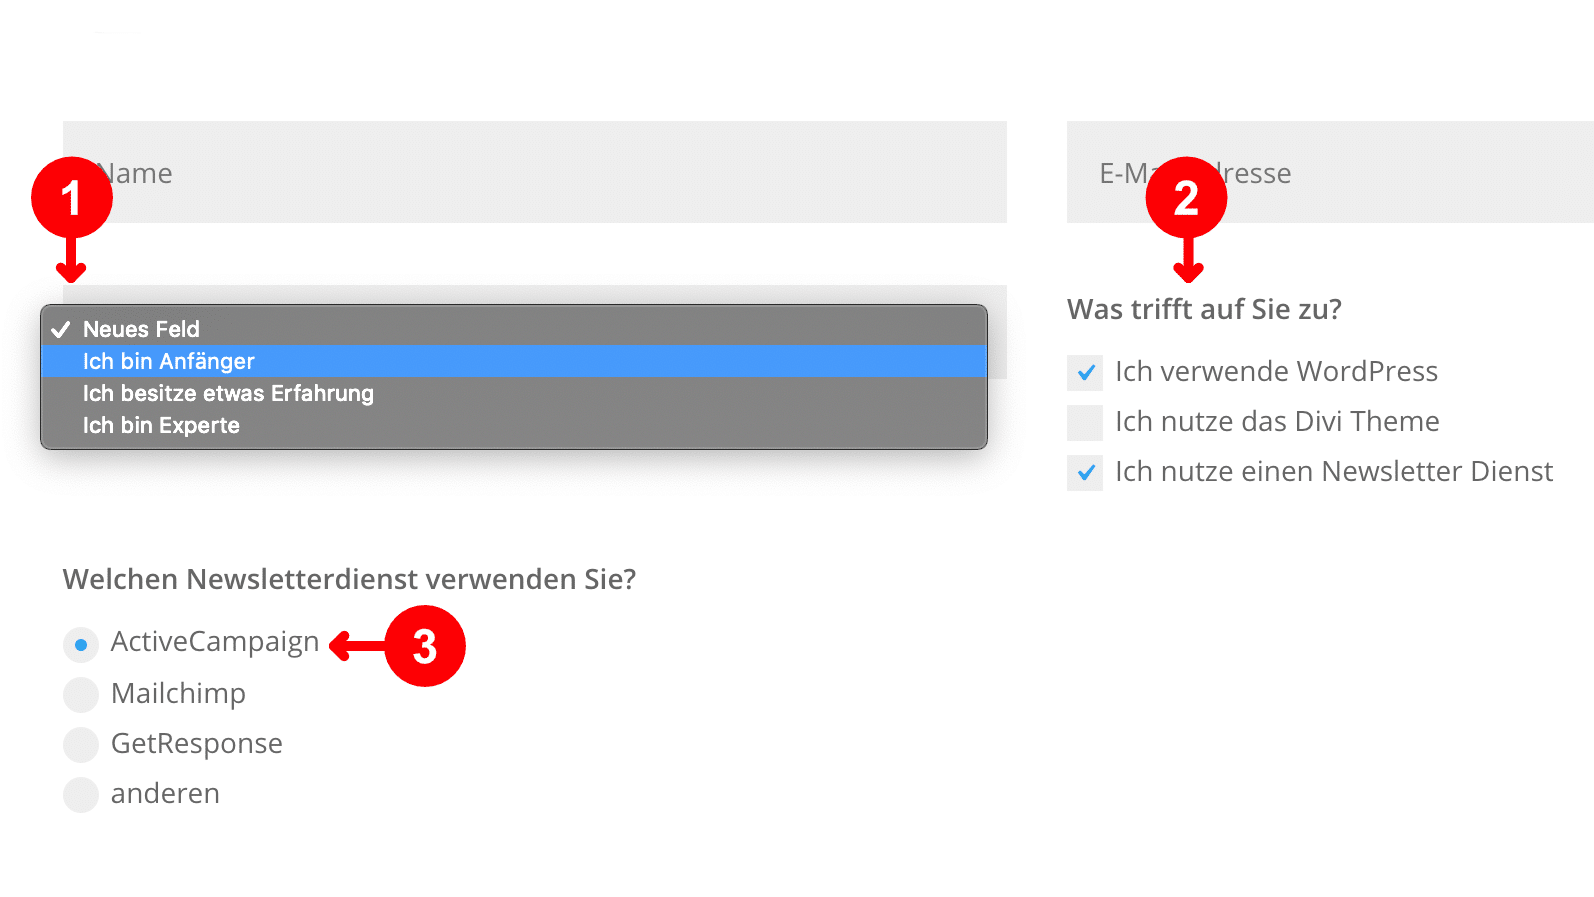 Divi Theme Kontaktformular: Dropdown, Checkbox, Radio Button